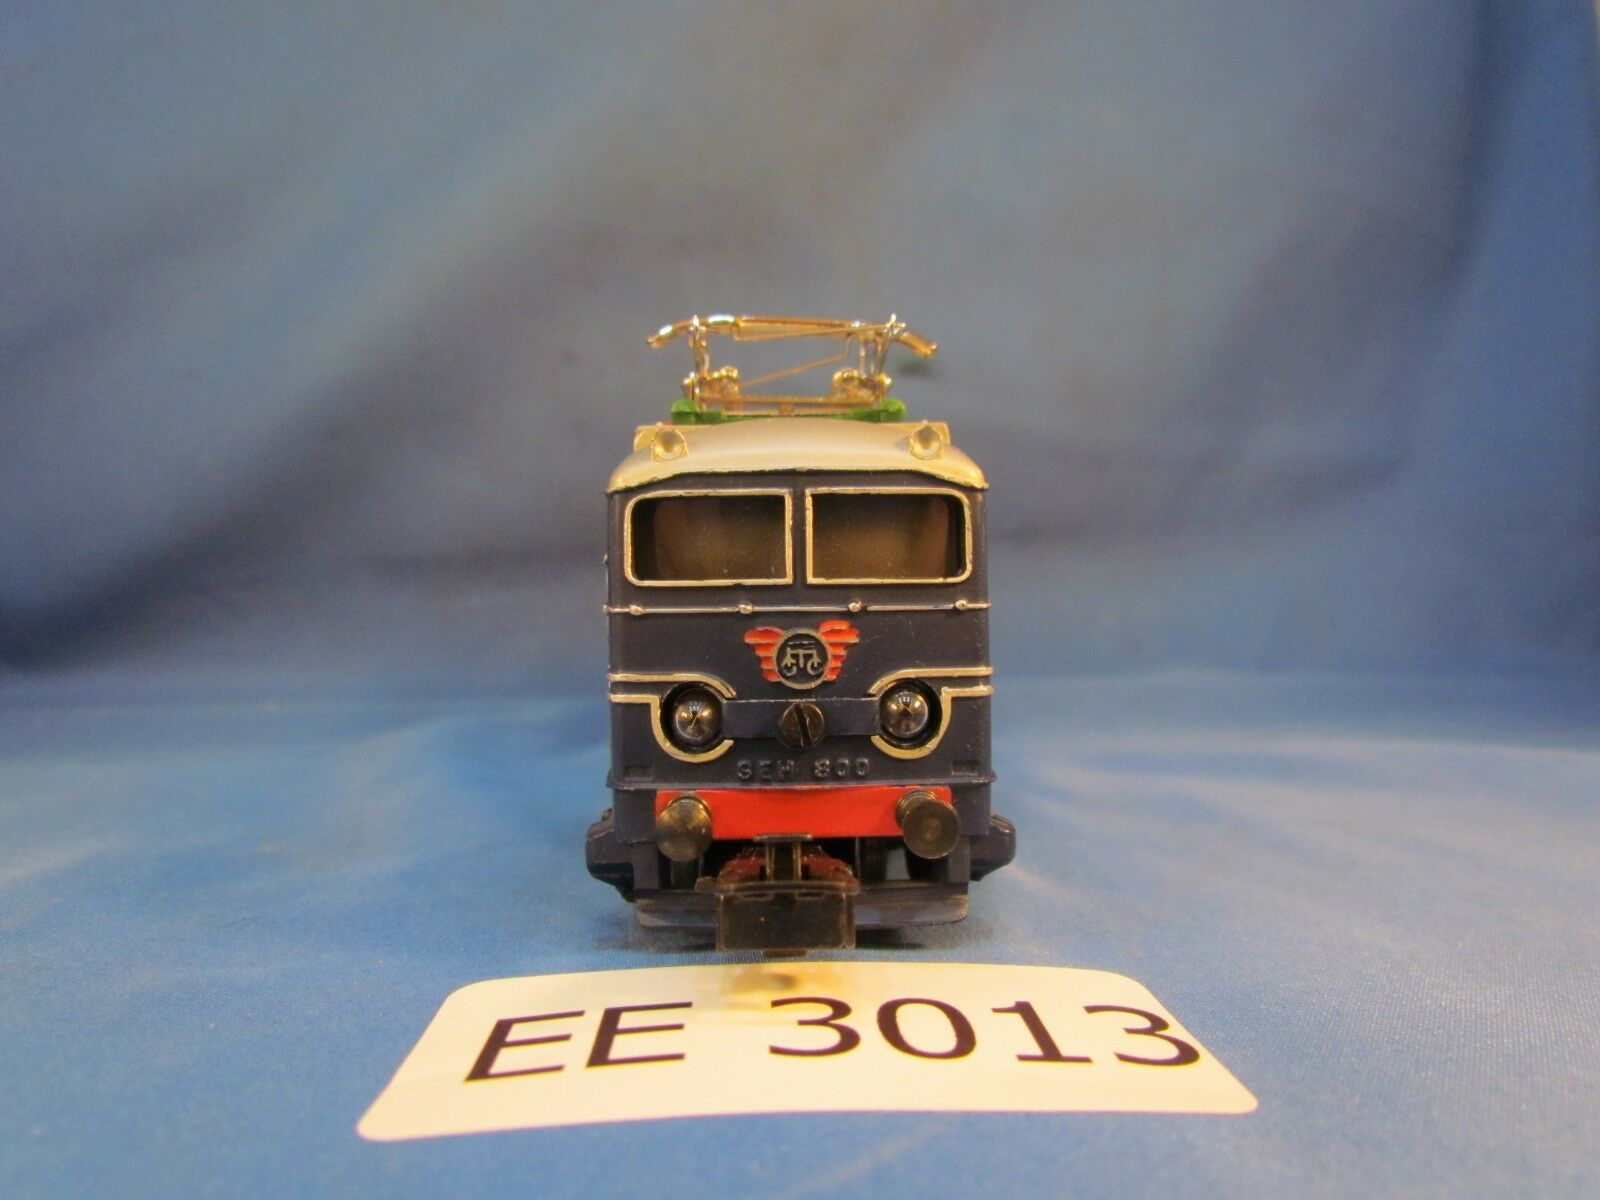 EE 3013 NS NS NS BR 1100 Netherlands blu Electric Loco 0-4-4-0 c05698